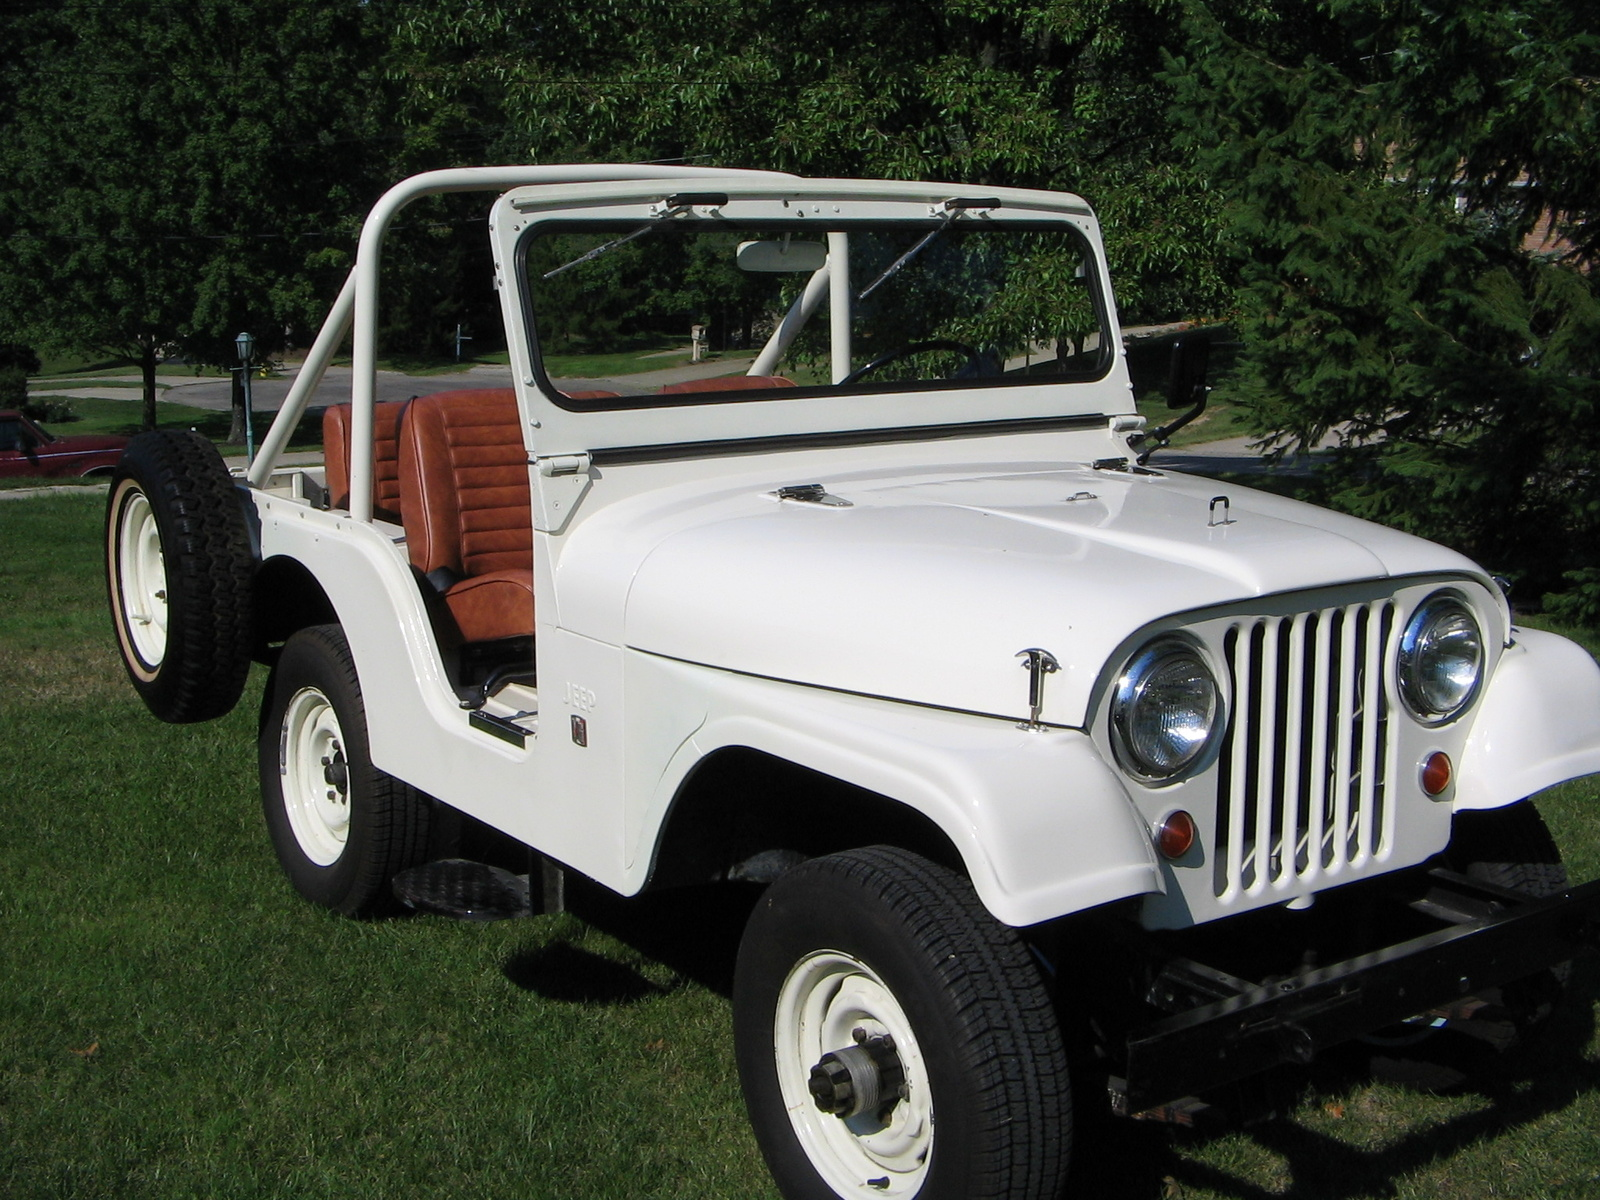 1970 Kaiser Jeep Cj5 Wiring Photos Informations Articles 1600x1200